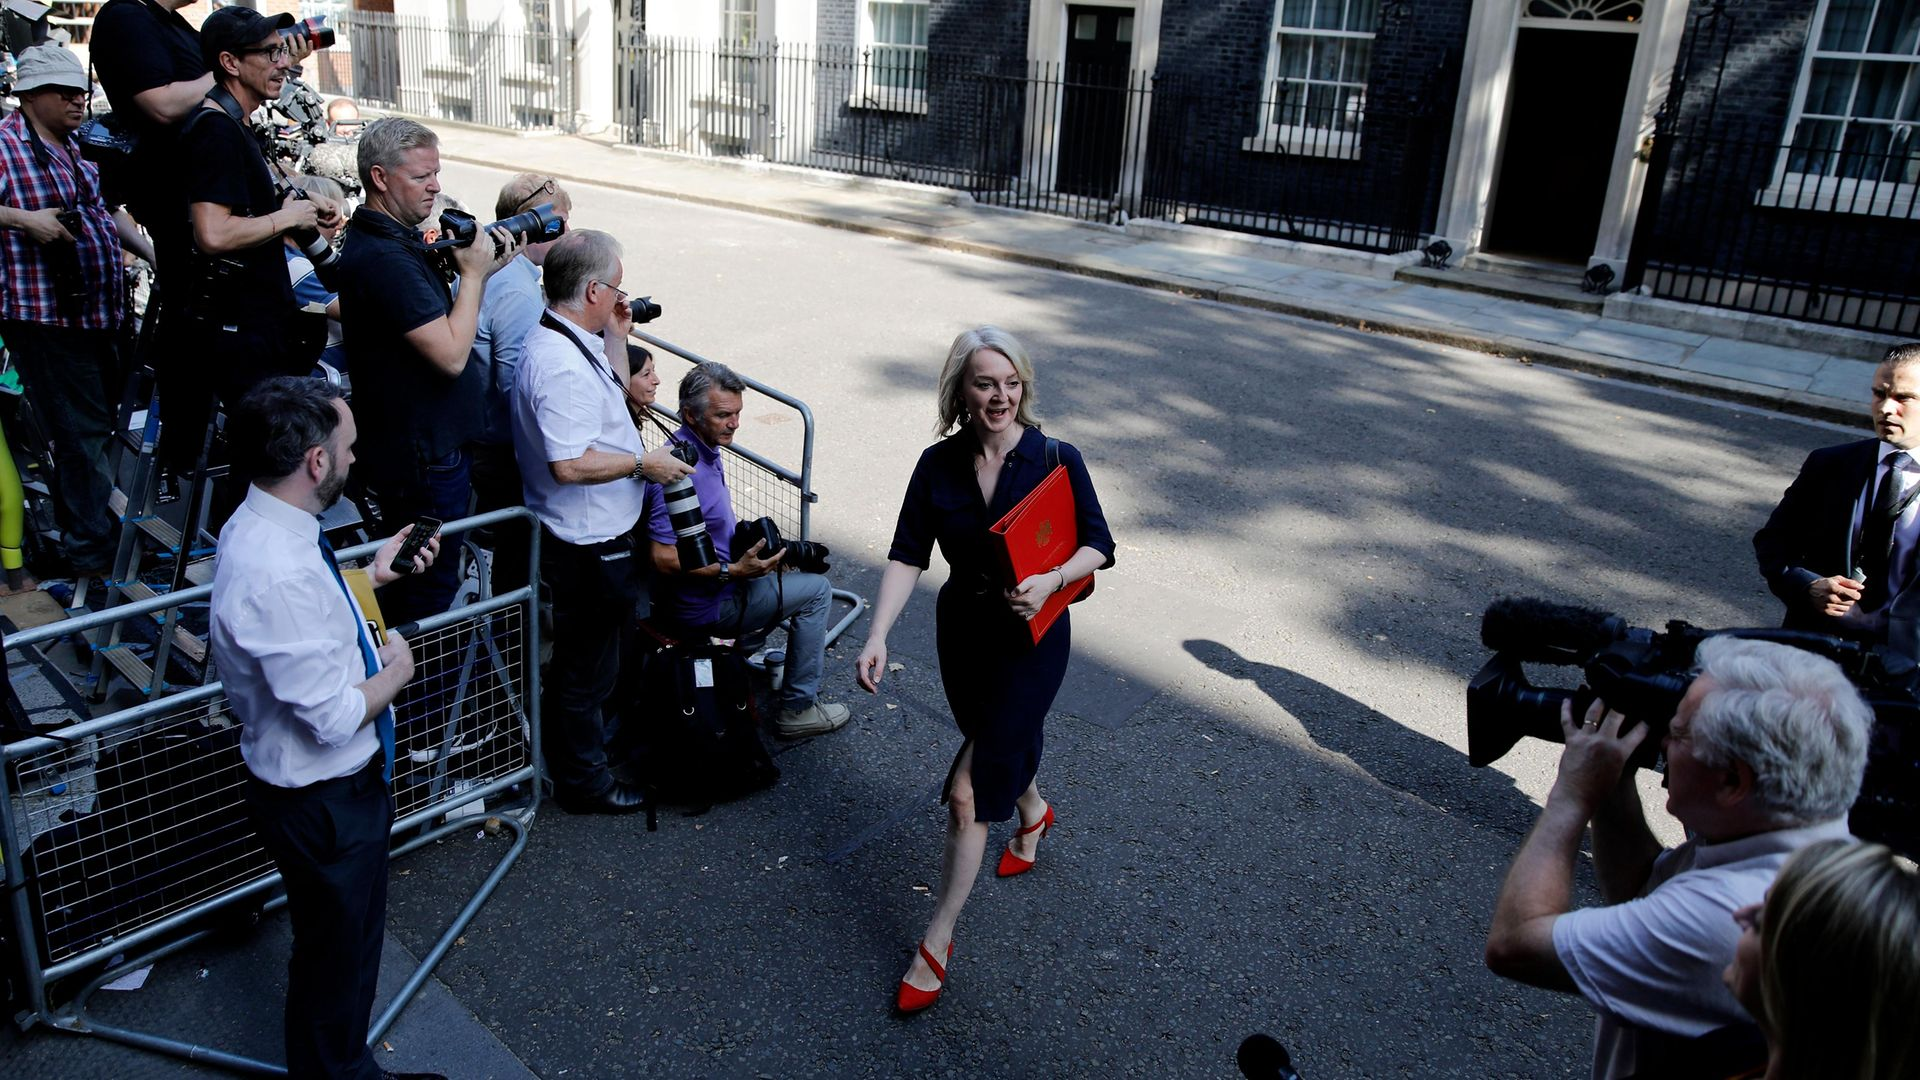 Liz Truss leaves 10 Downing street after a cabinet meeting in July 2019, the day after her appointment as trade secretary - Credit: AFP via Getty Images